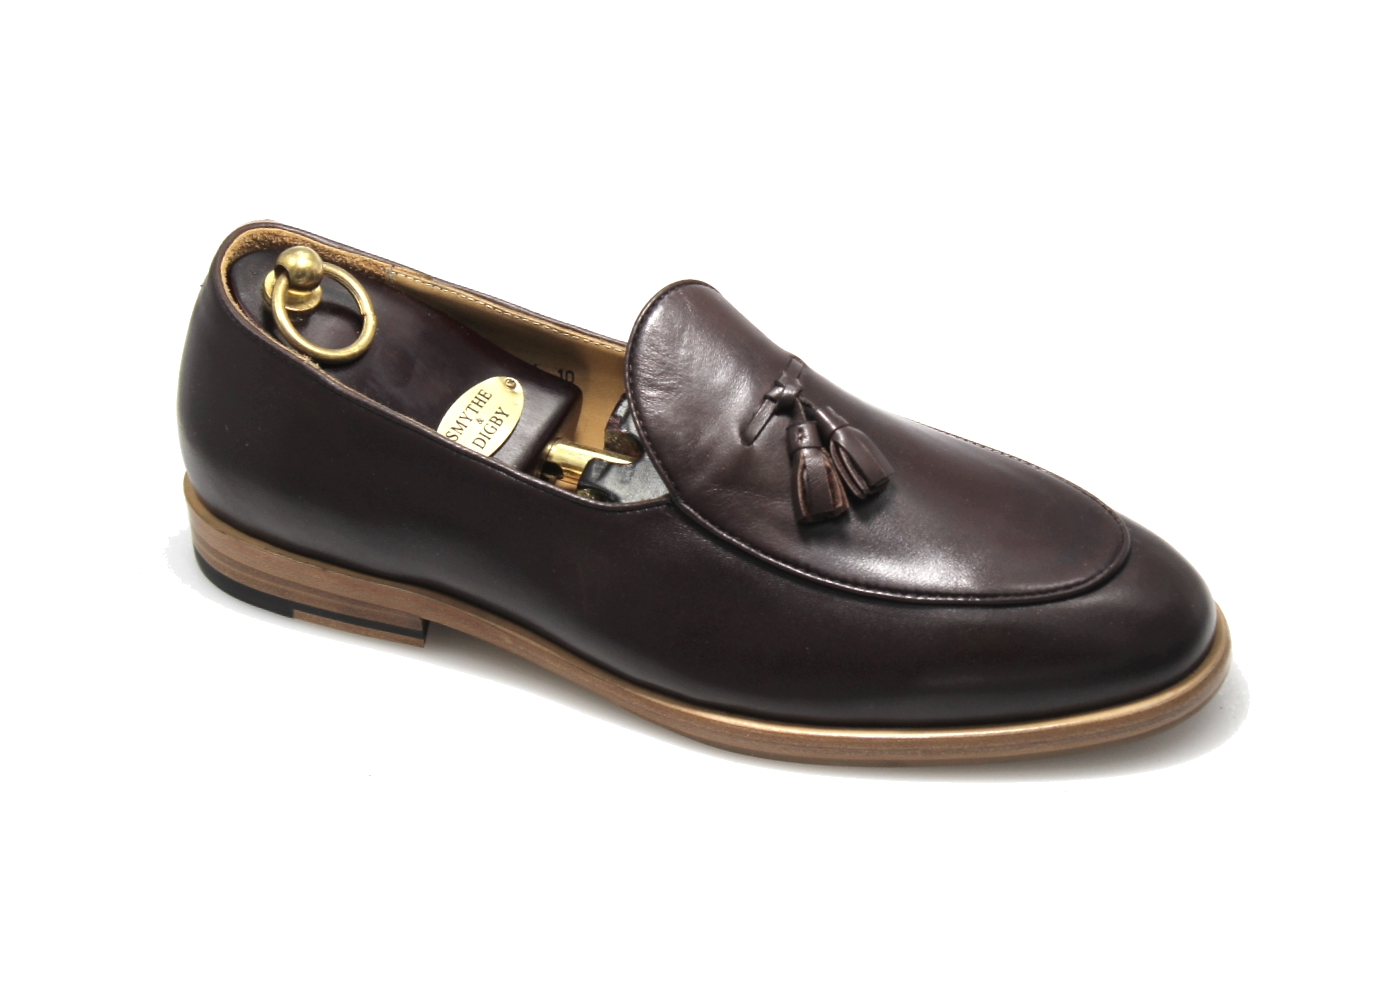 Men's Handmade Brown Leather Tassel Belgian Loafers